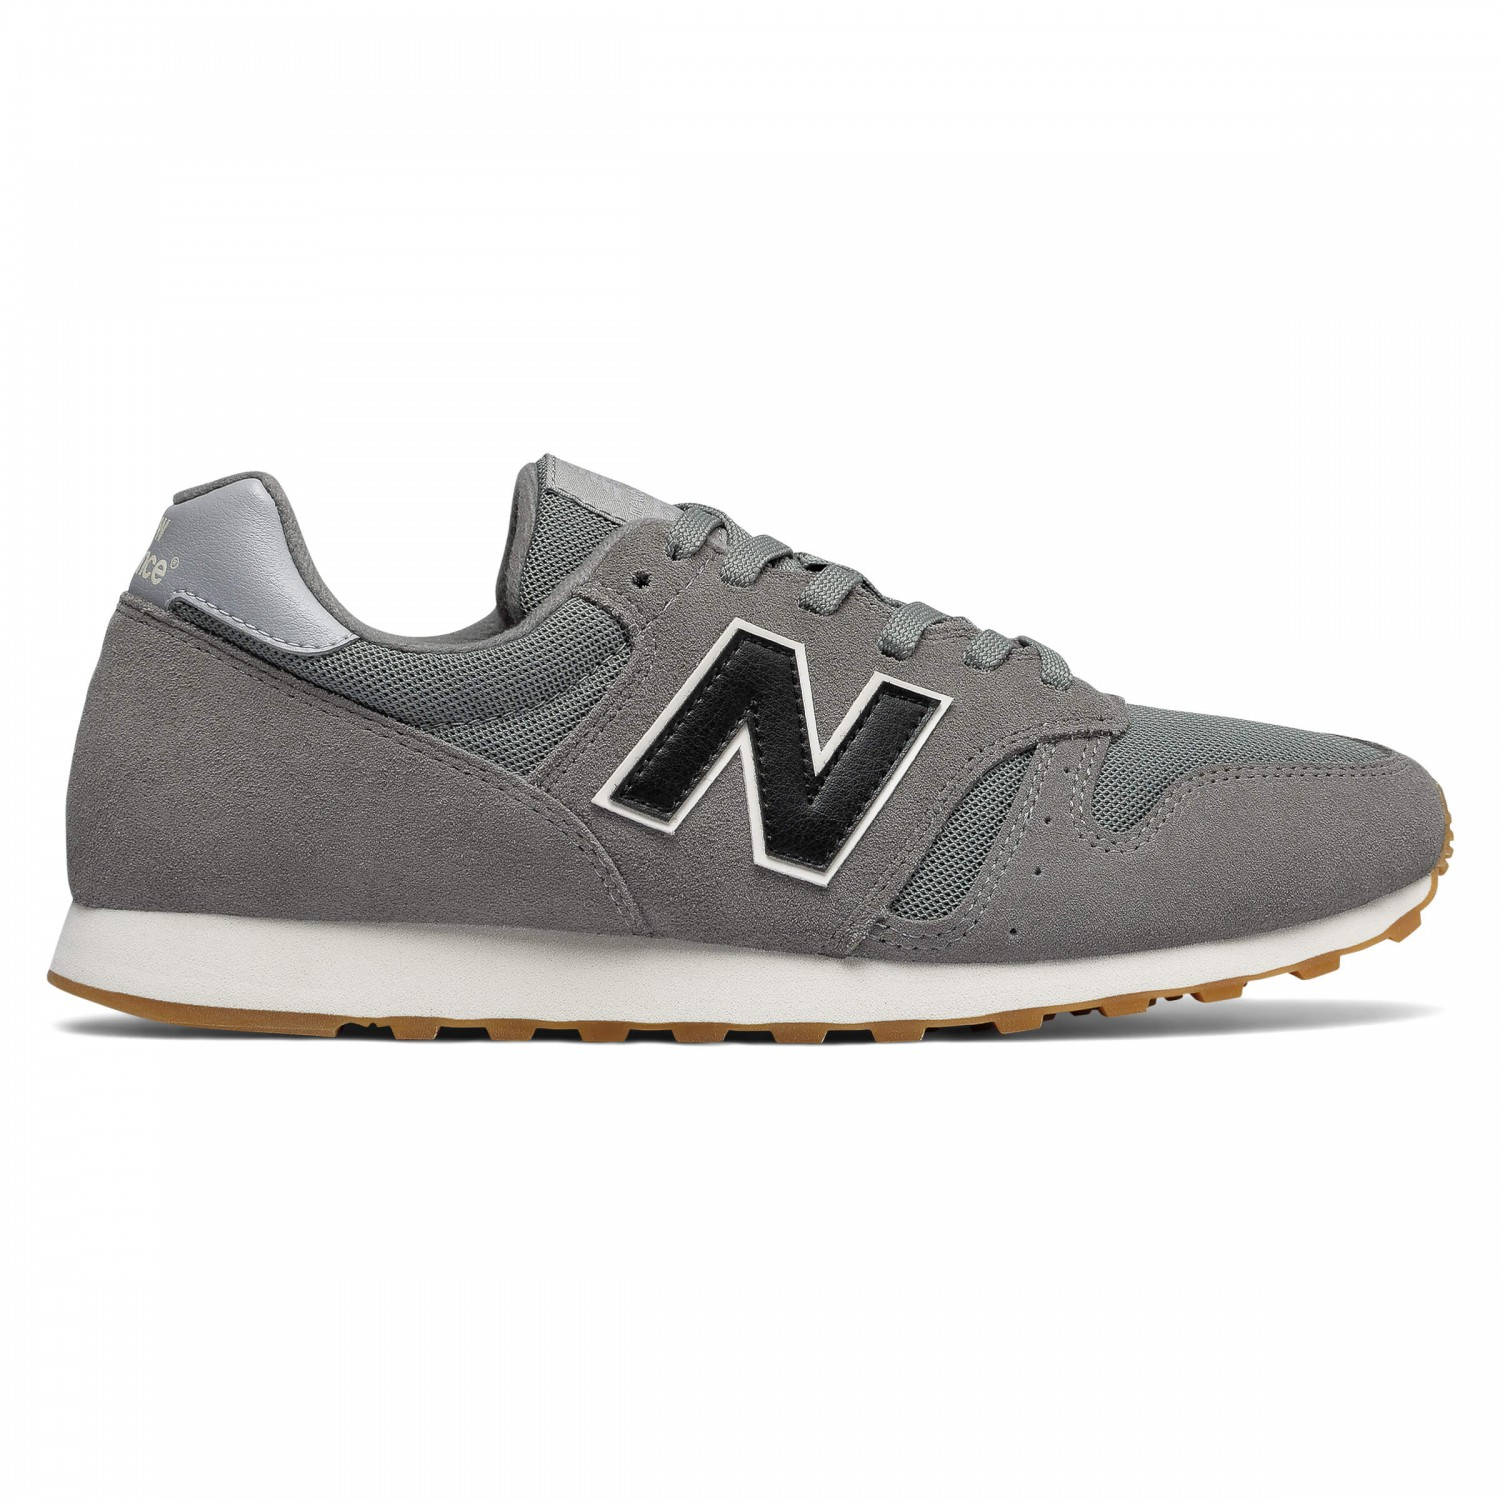 New Balance - Sneakers Bas ML373 - Sneaker Grey / Black